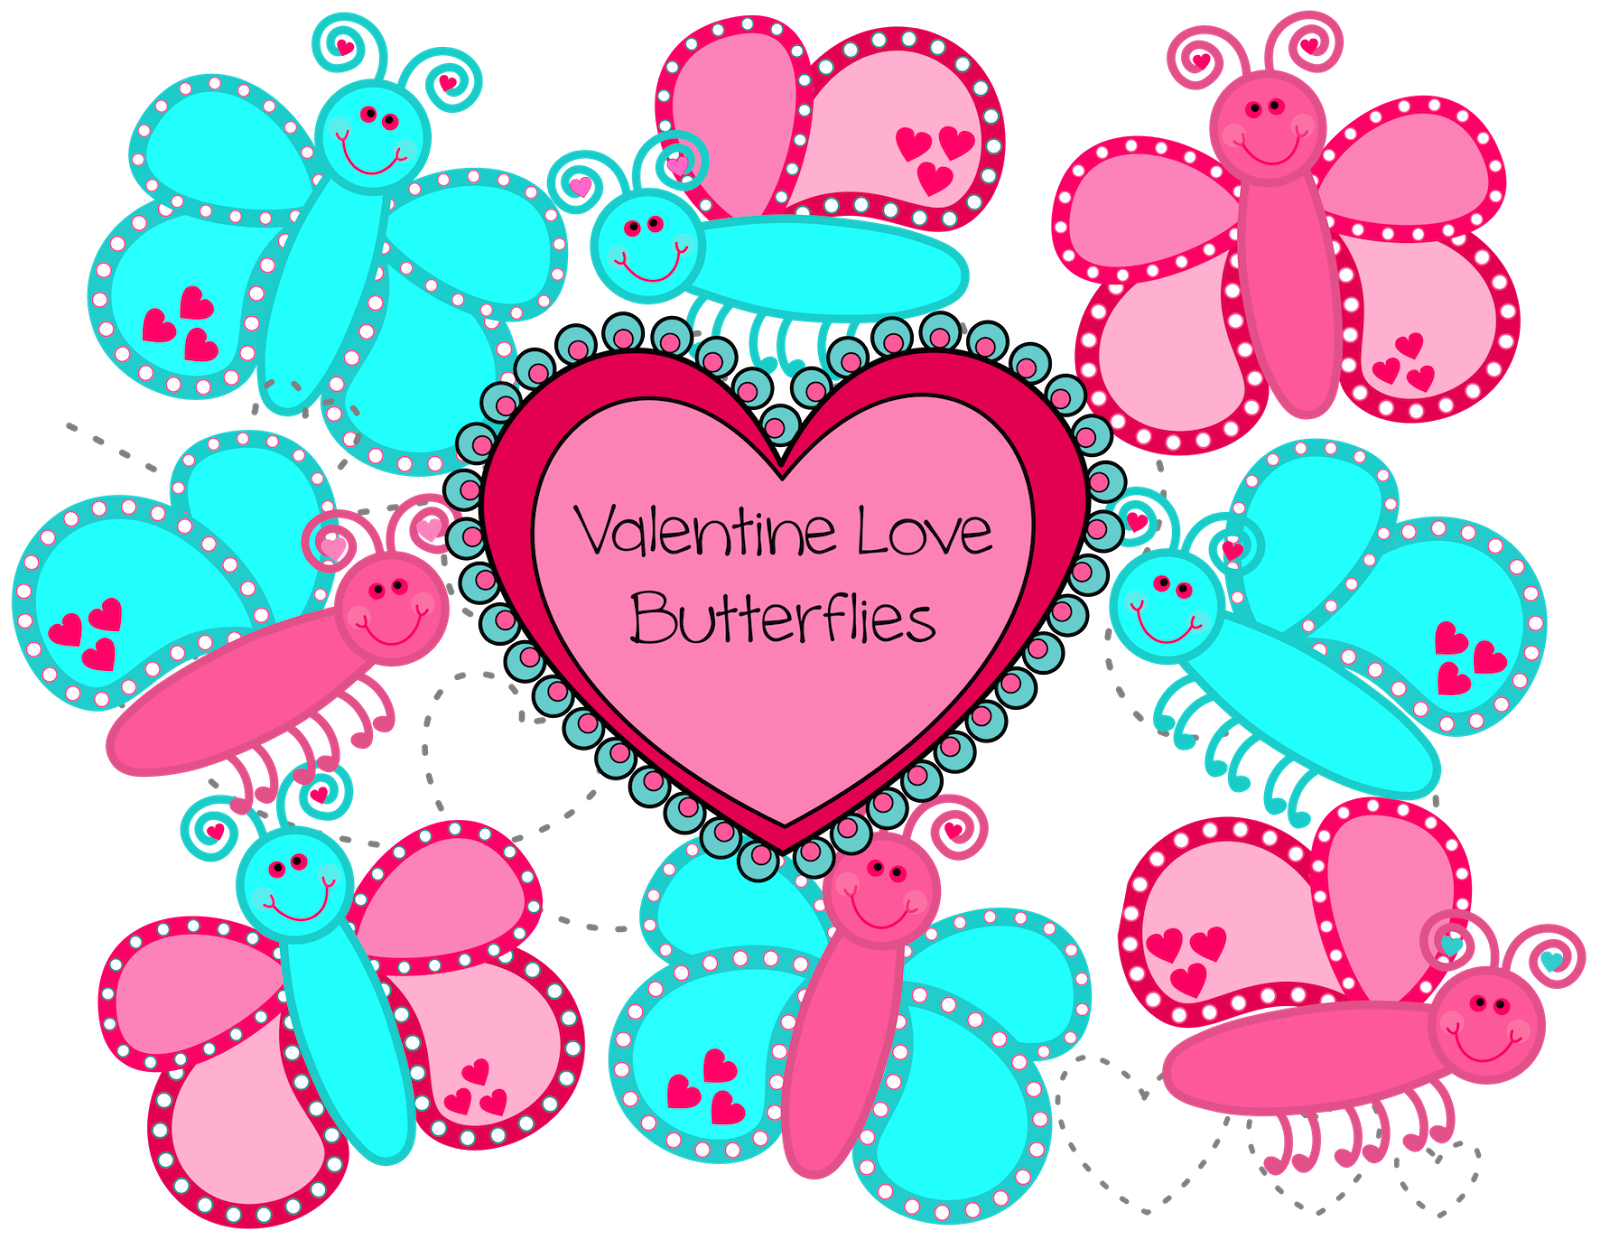 Butterfly clipart valentine's day The Day Butterflies and previous